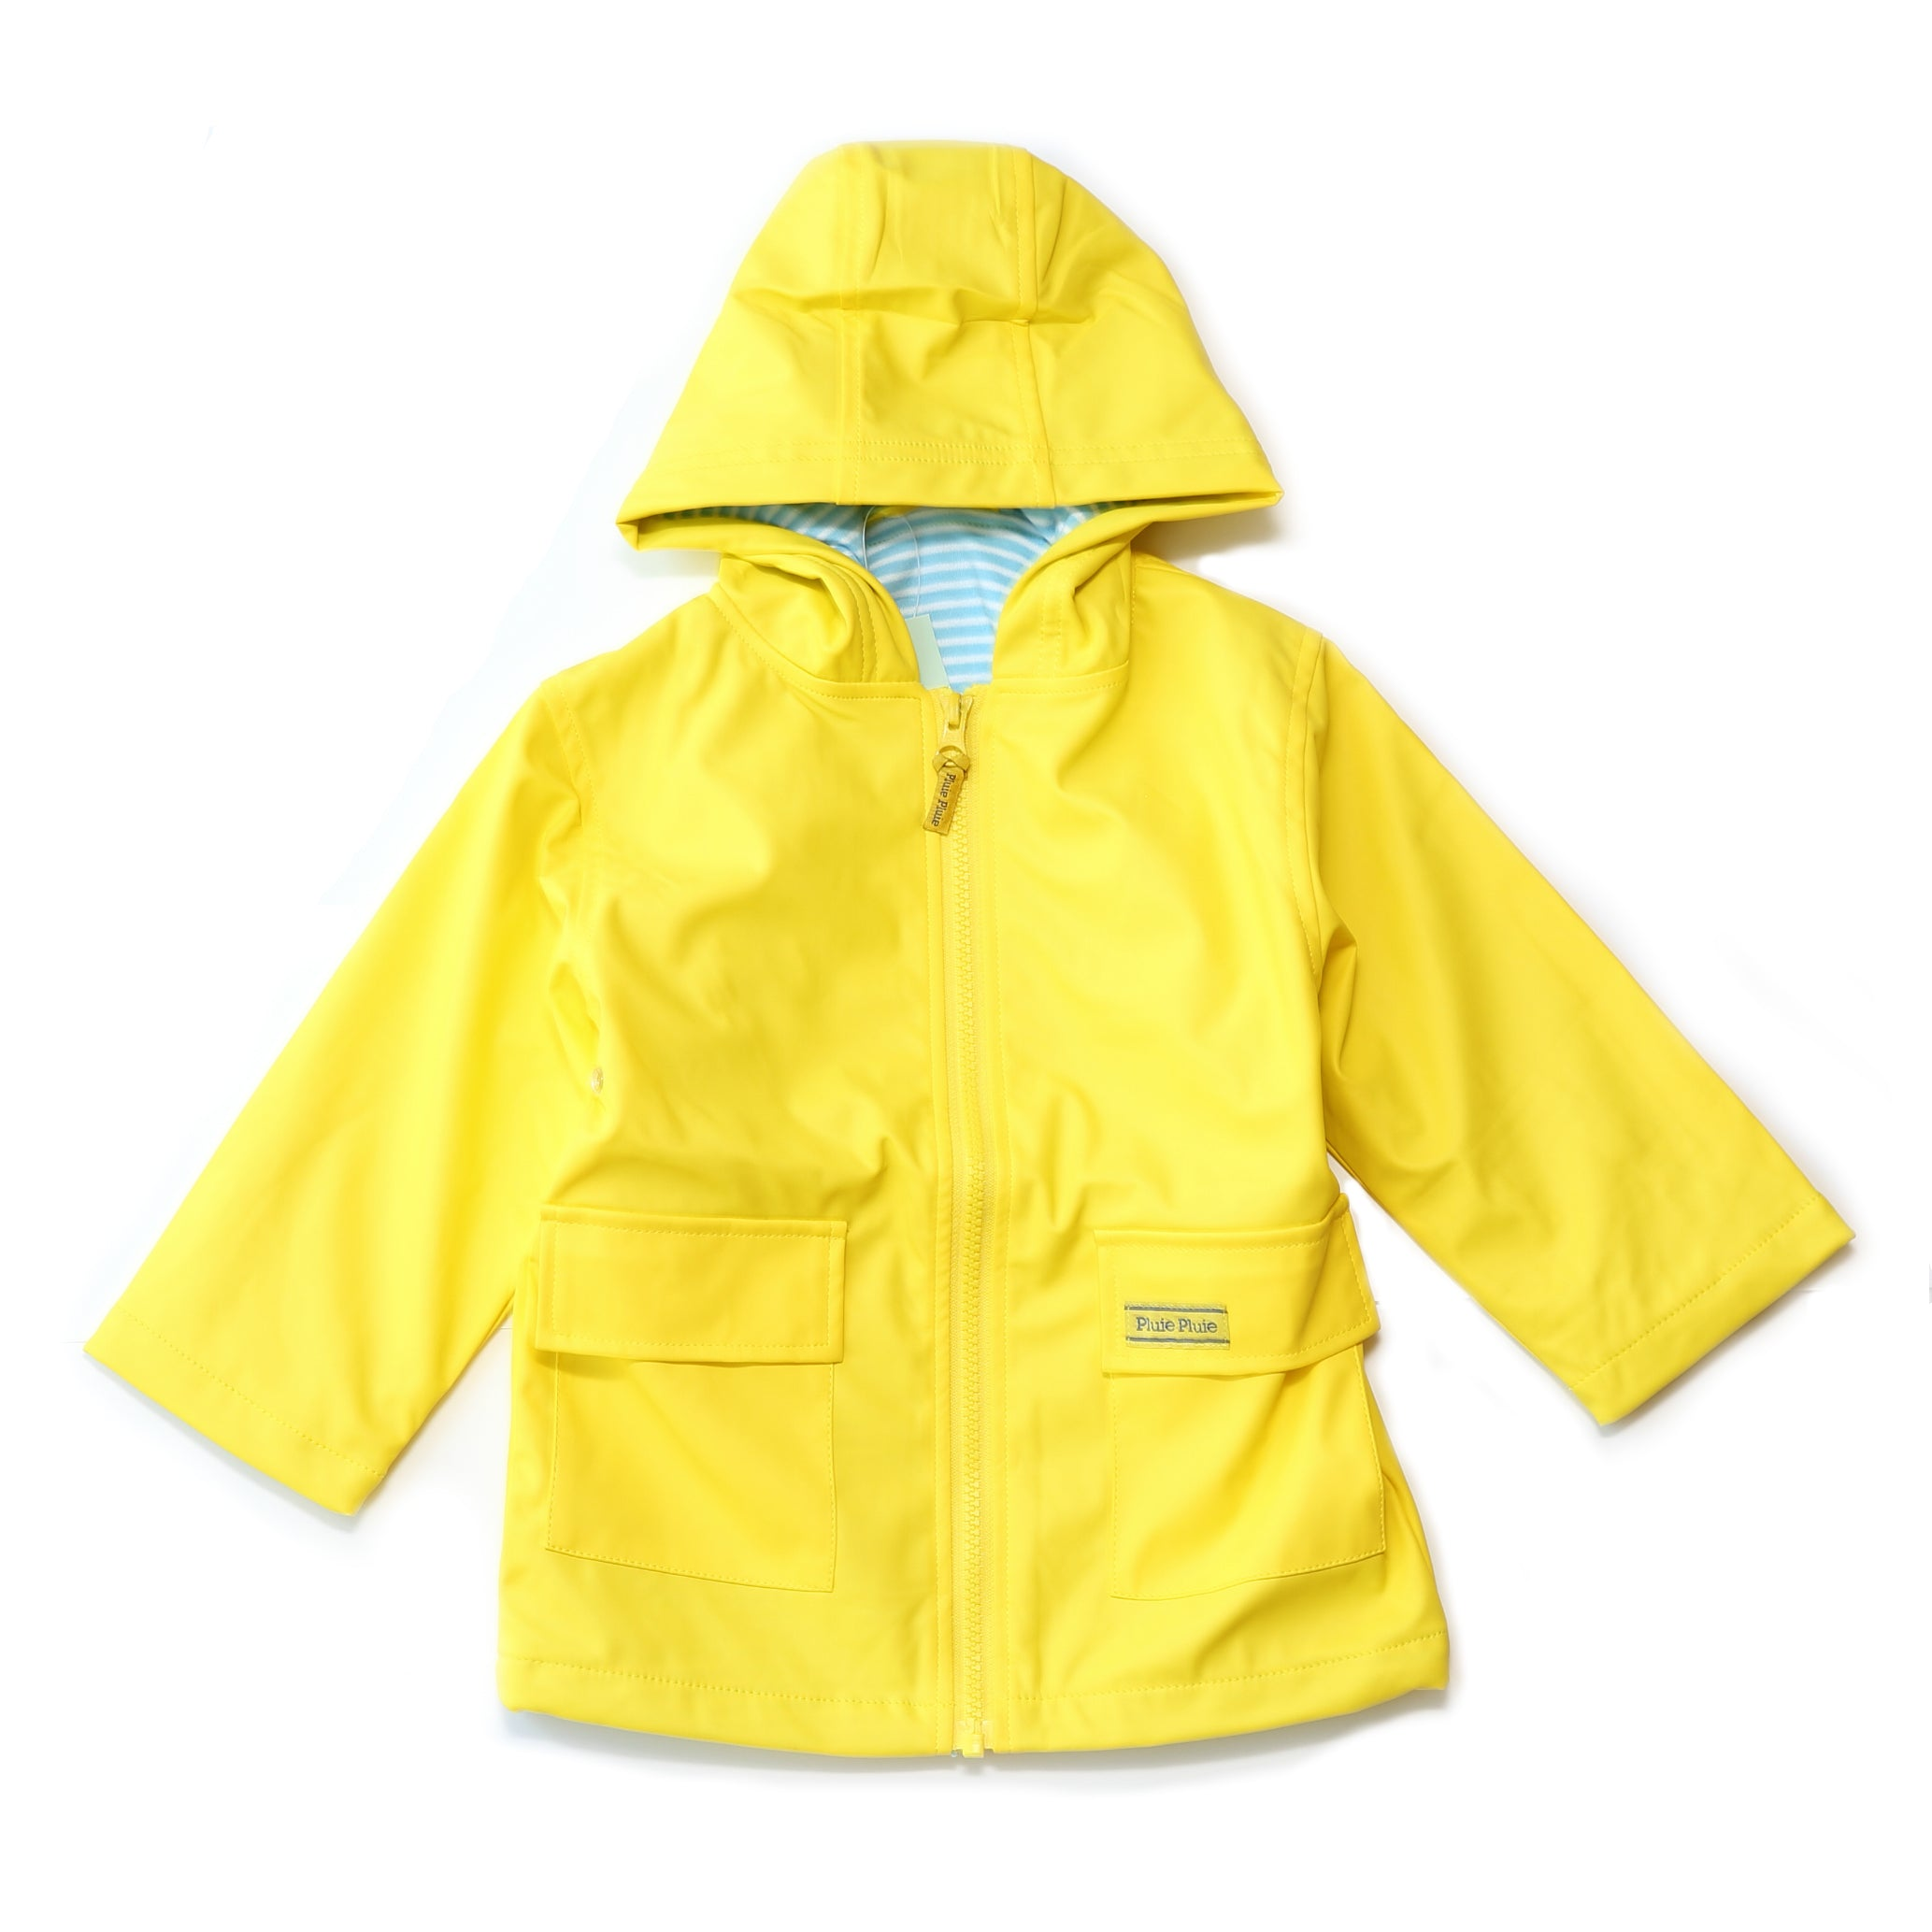 Pluie Pluie Boys Solid Yellow Raincoat